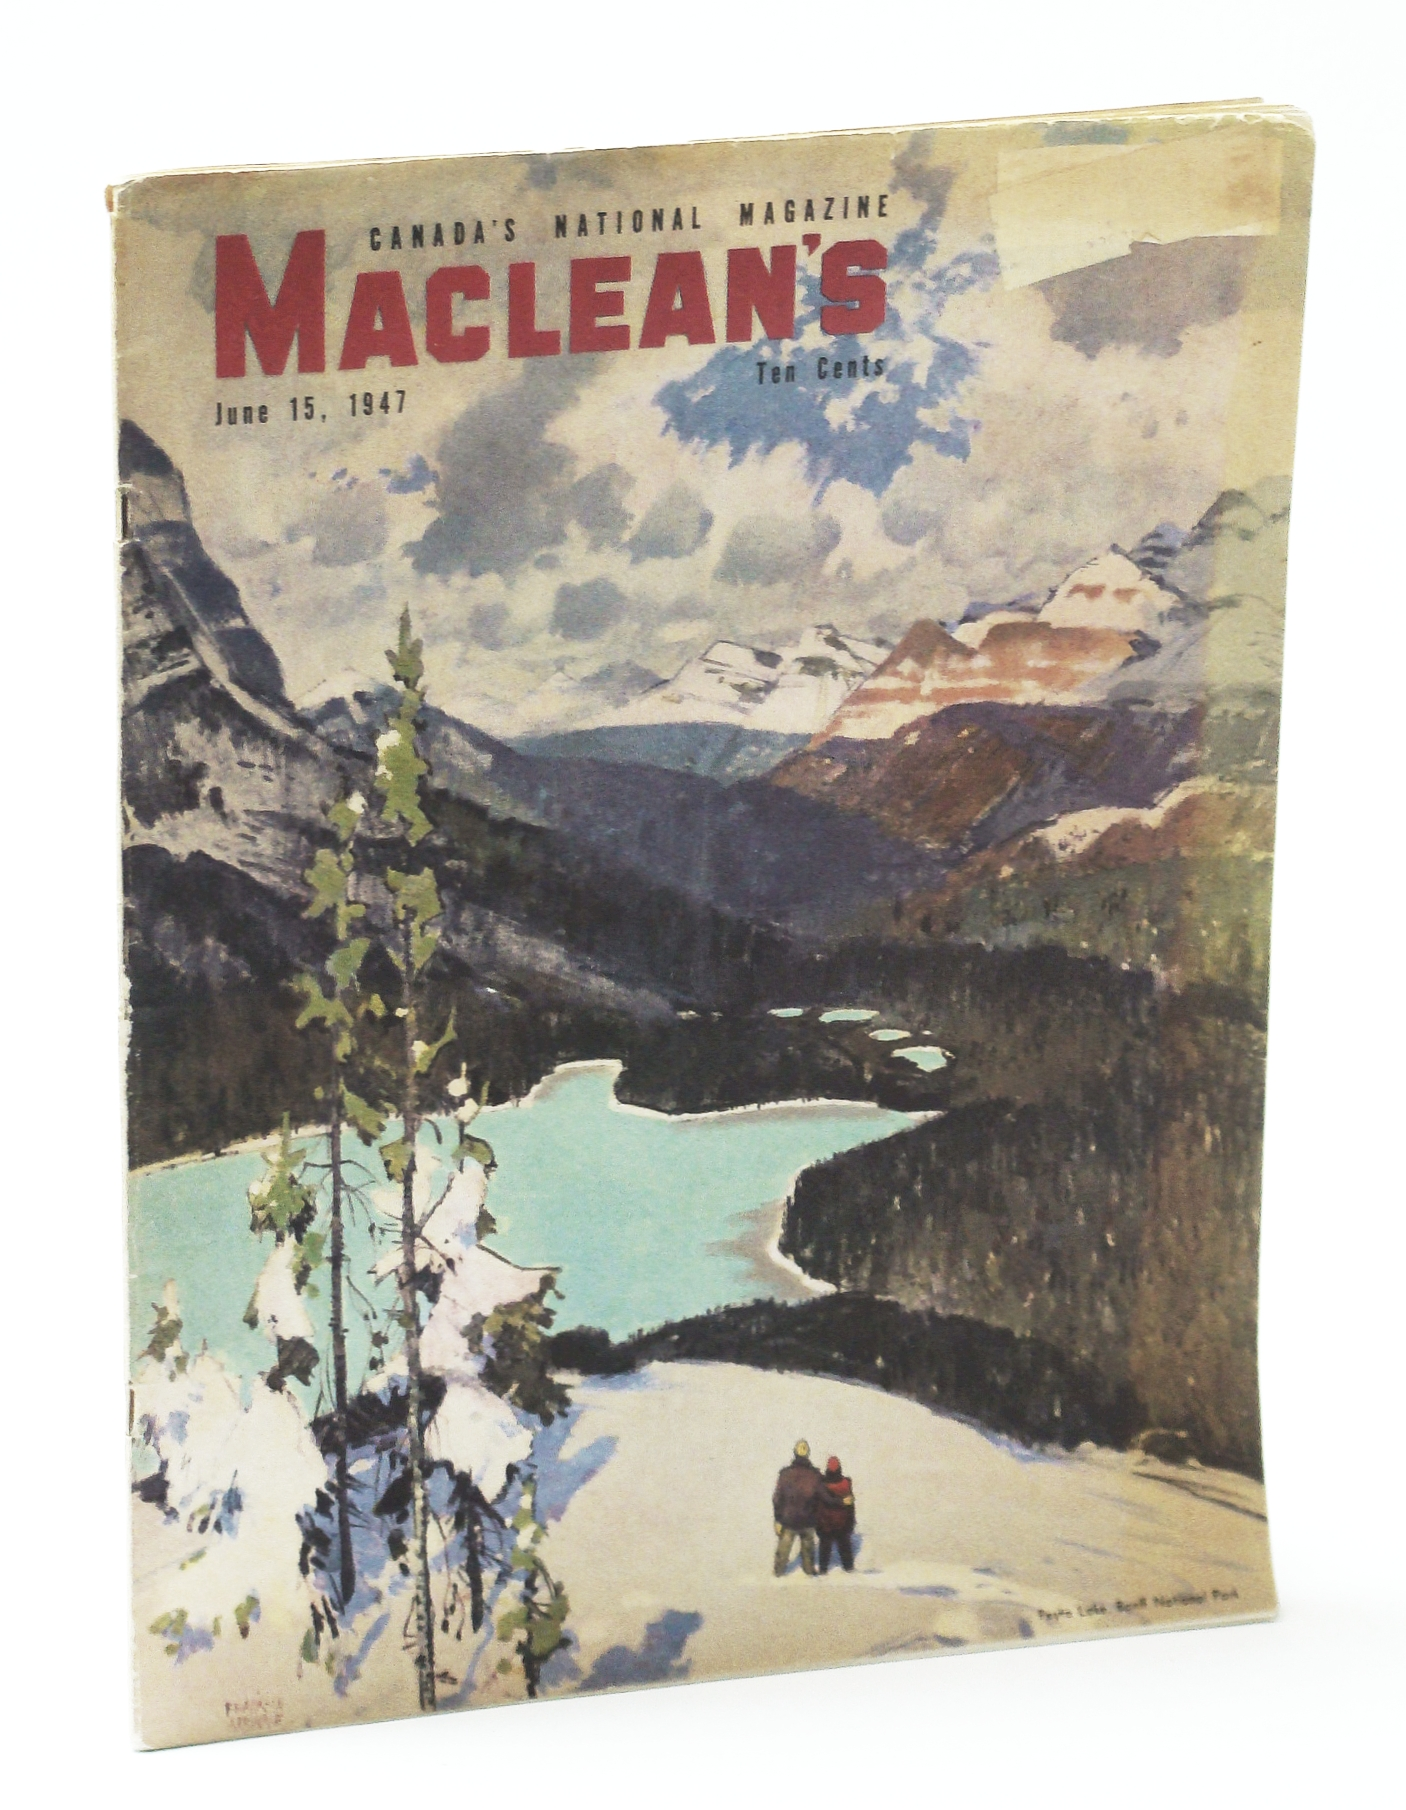 Image for Maclean's - Canada's National Magazine, June 15, 1947 - The Divorce Racket / Oil Boom-Town Leduc, Alberta